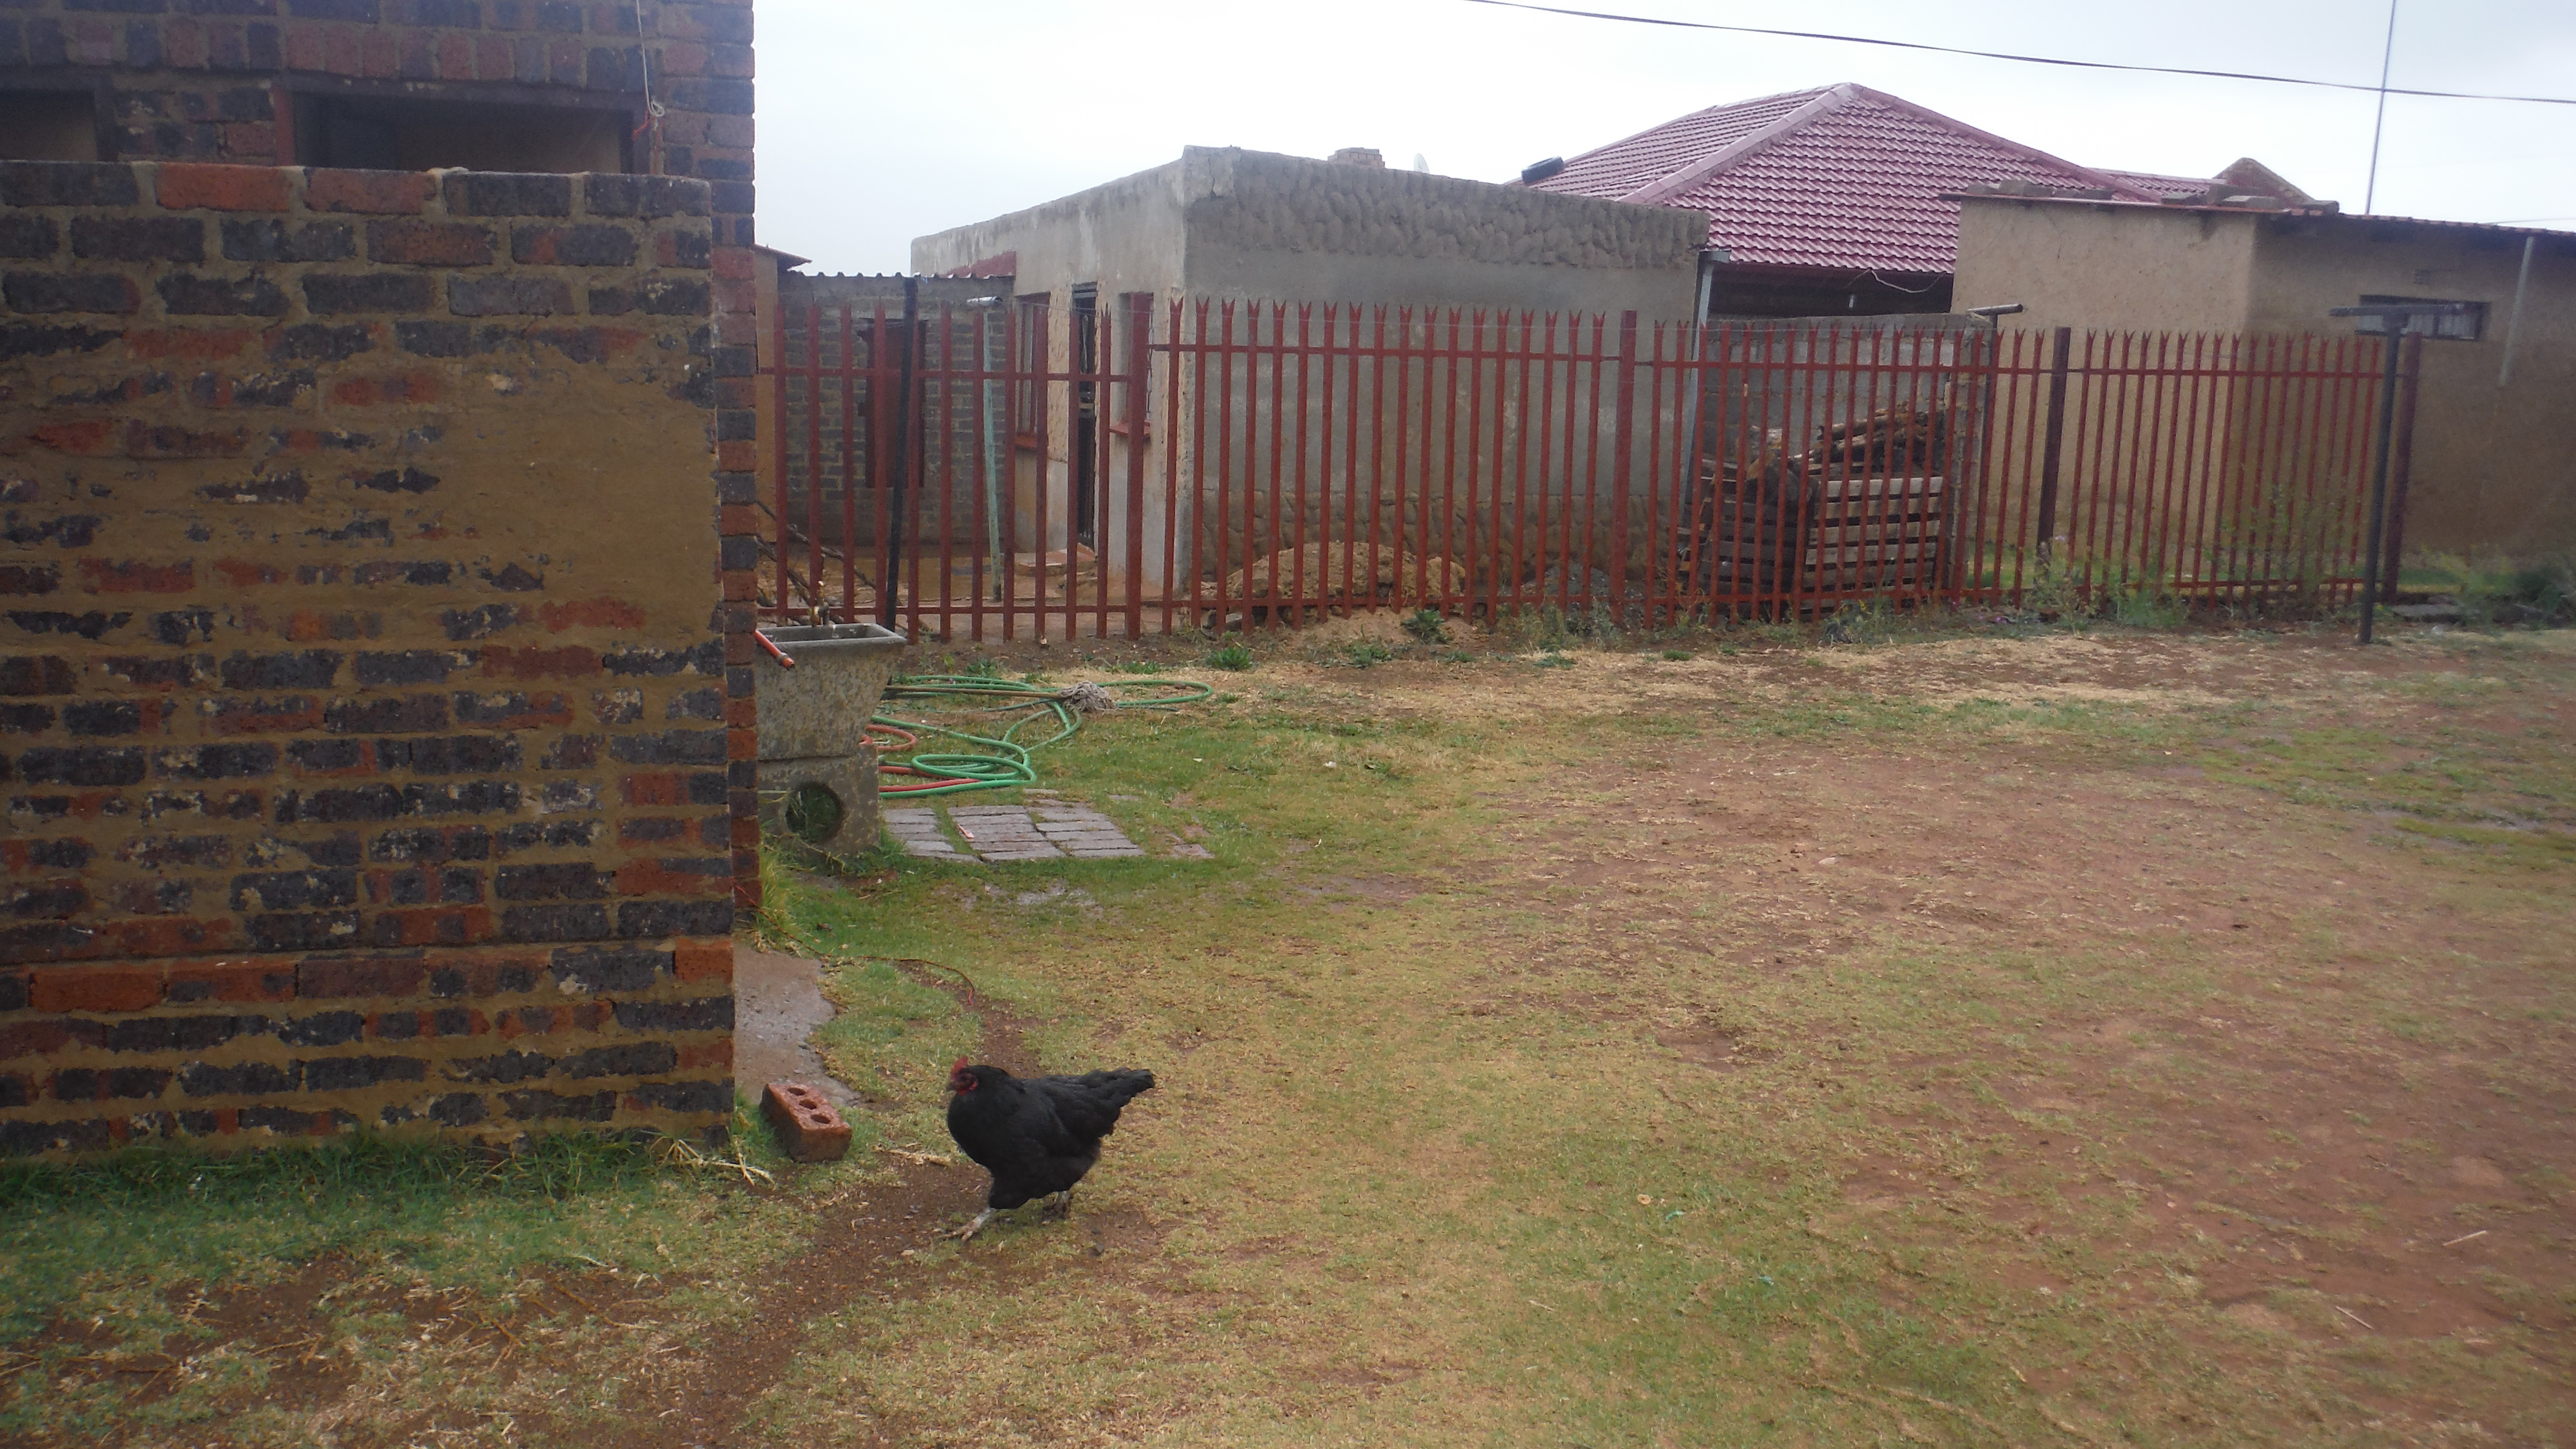 Chickens in the church yard